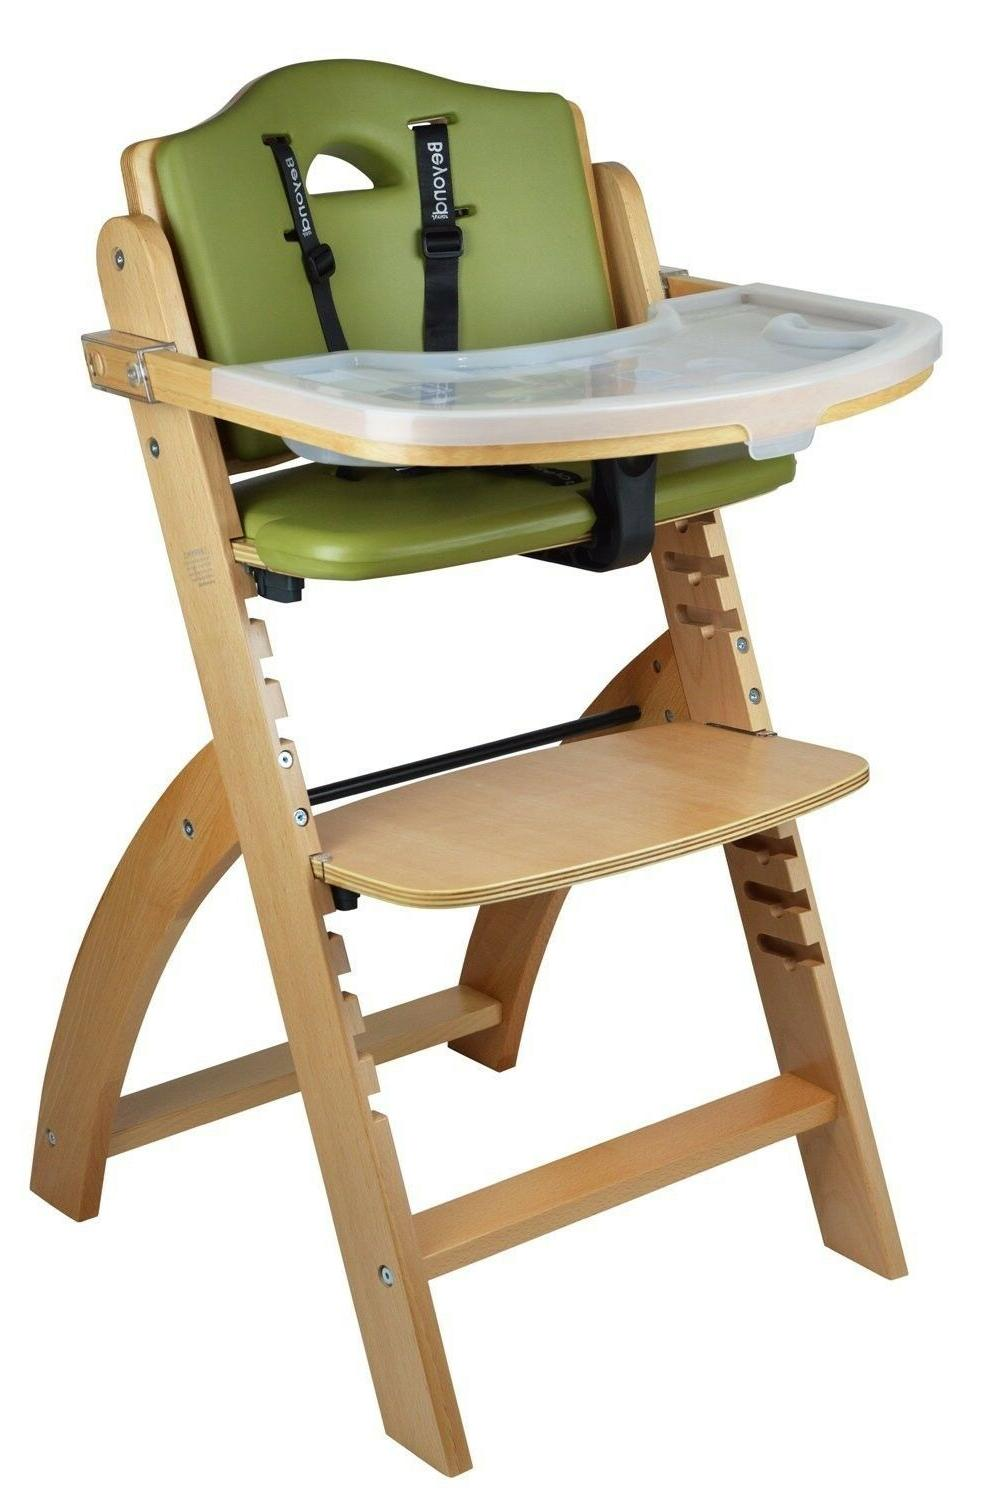 Abiie Beyond Wooden High Chair With Tray. The Perfect Adjust